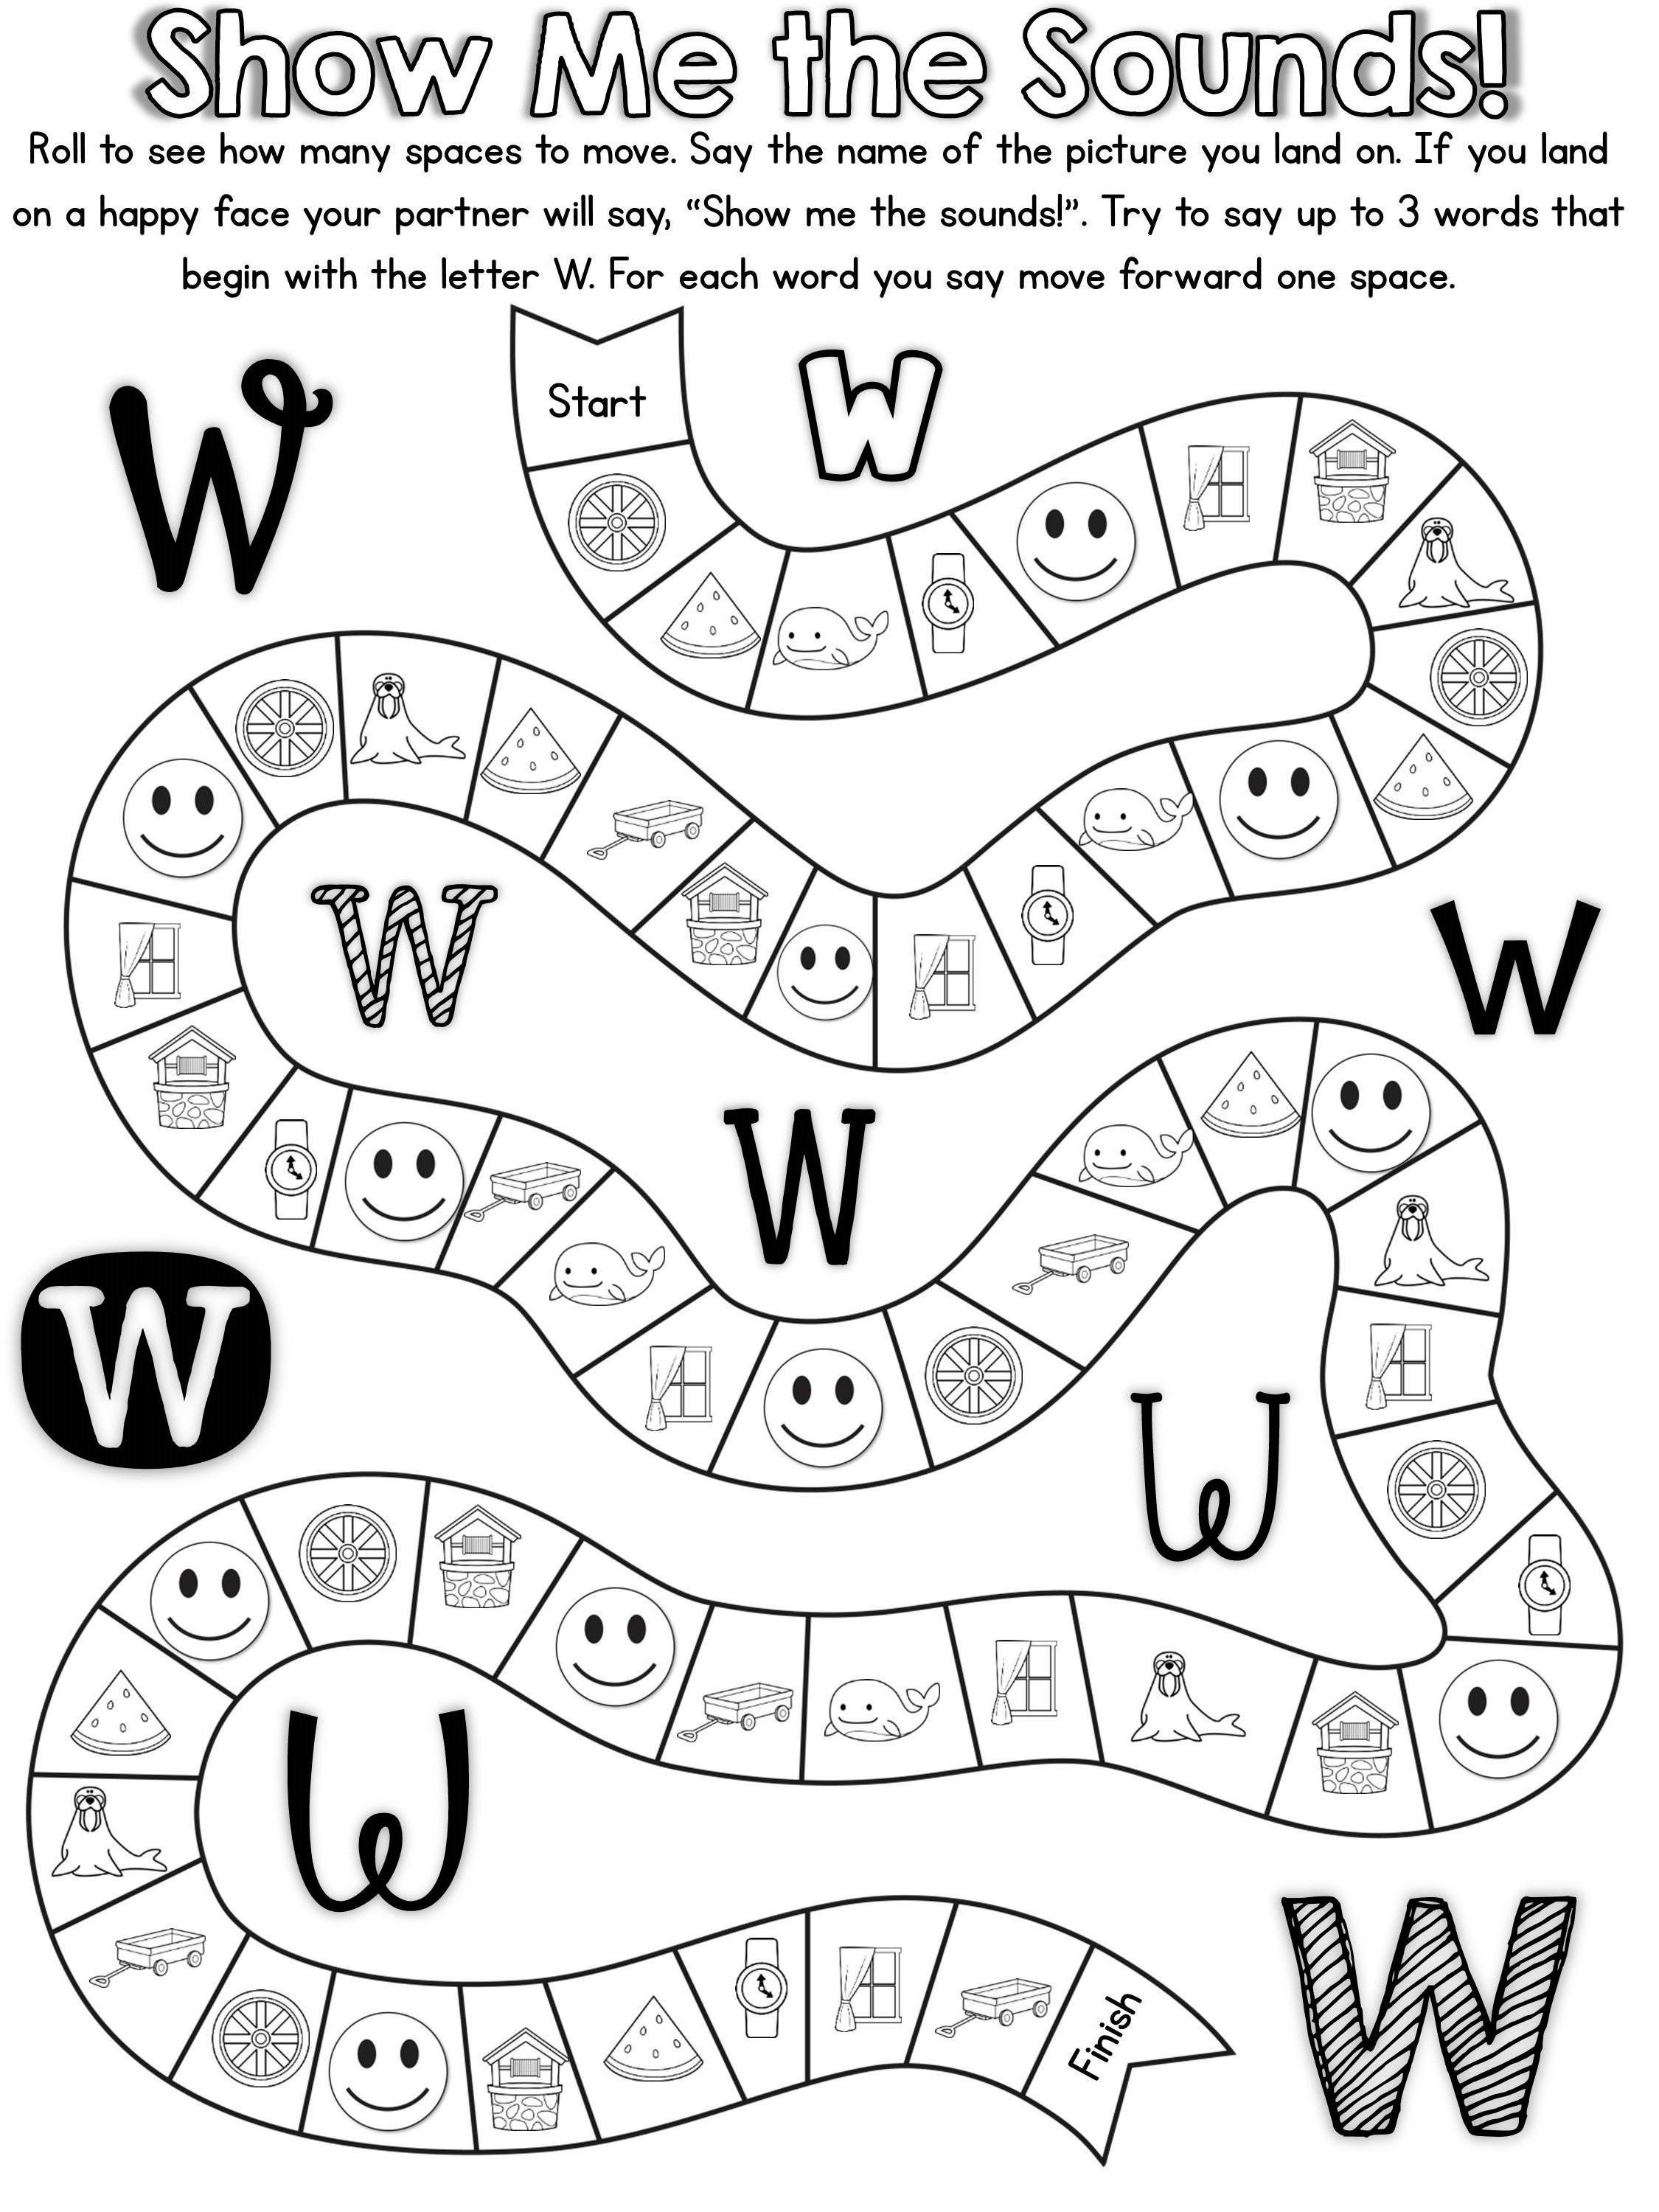 20 ready to print, no prep games to practice the letter W